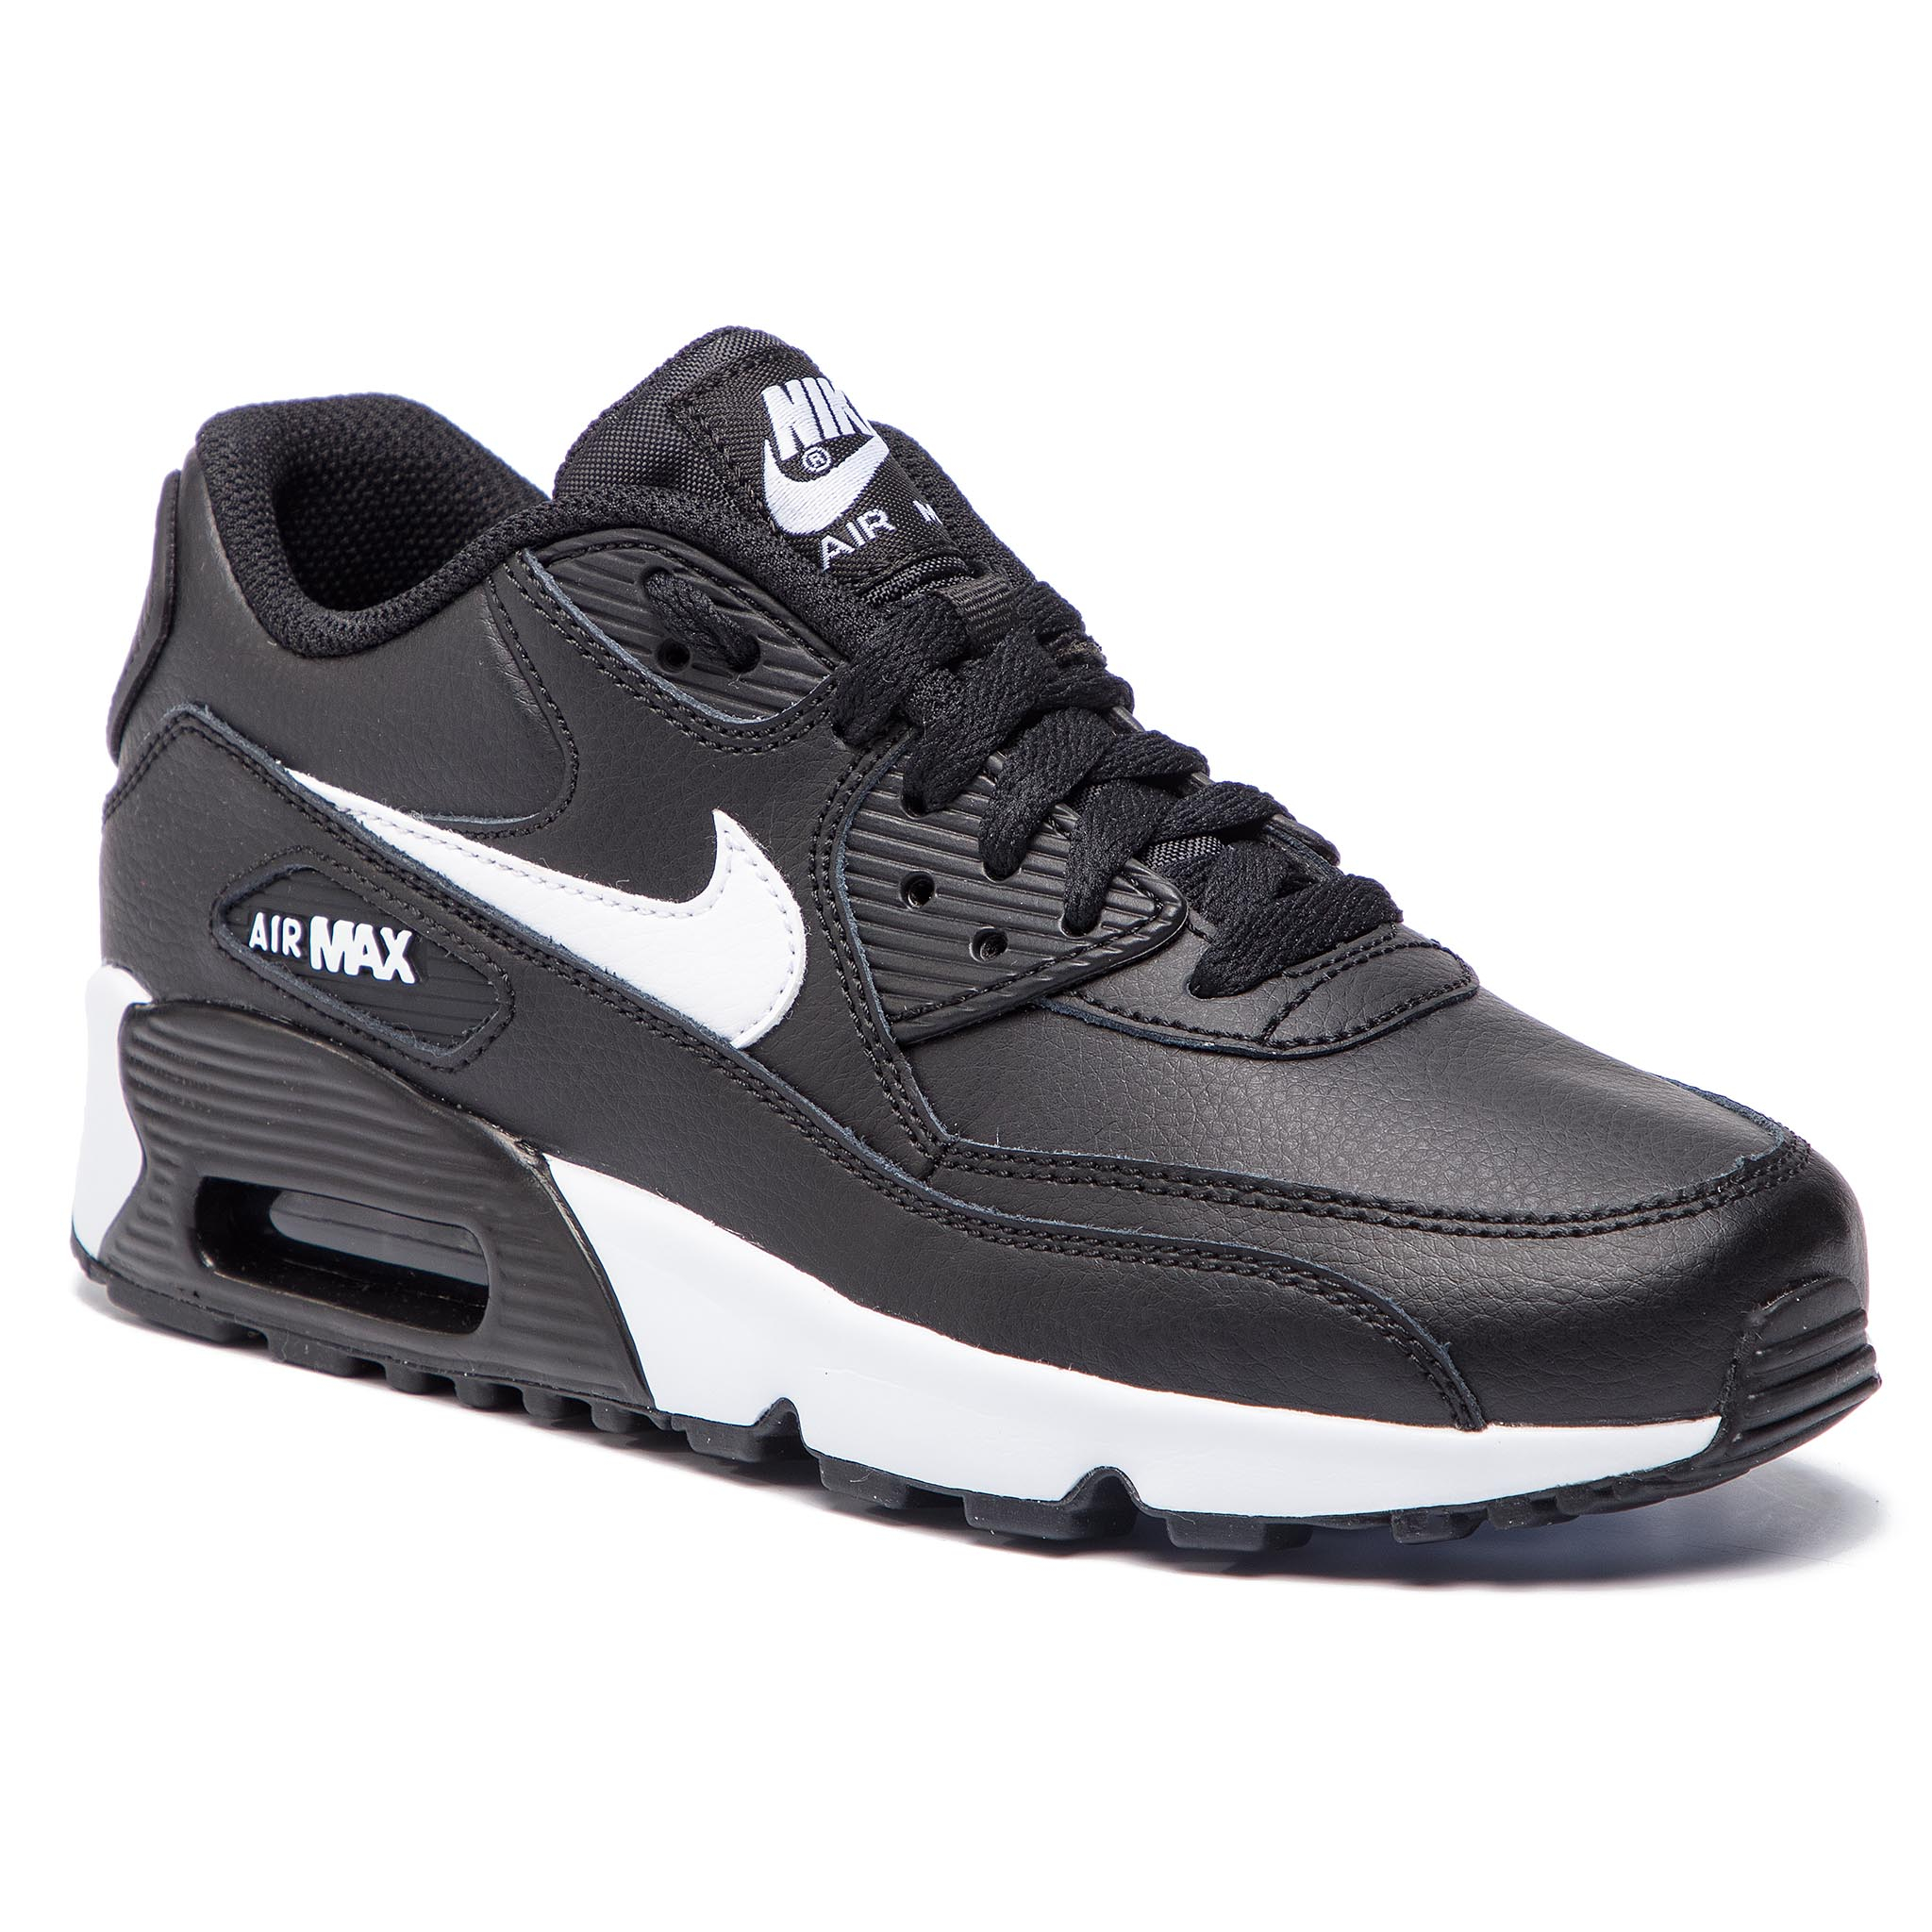 Buty NIKE – Air Max 90 Ltr 90 (GS) 833412 025 Czarne/Whit/Antracite